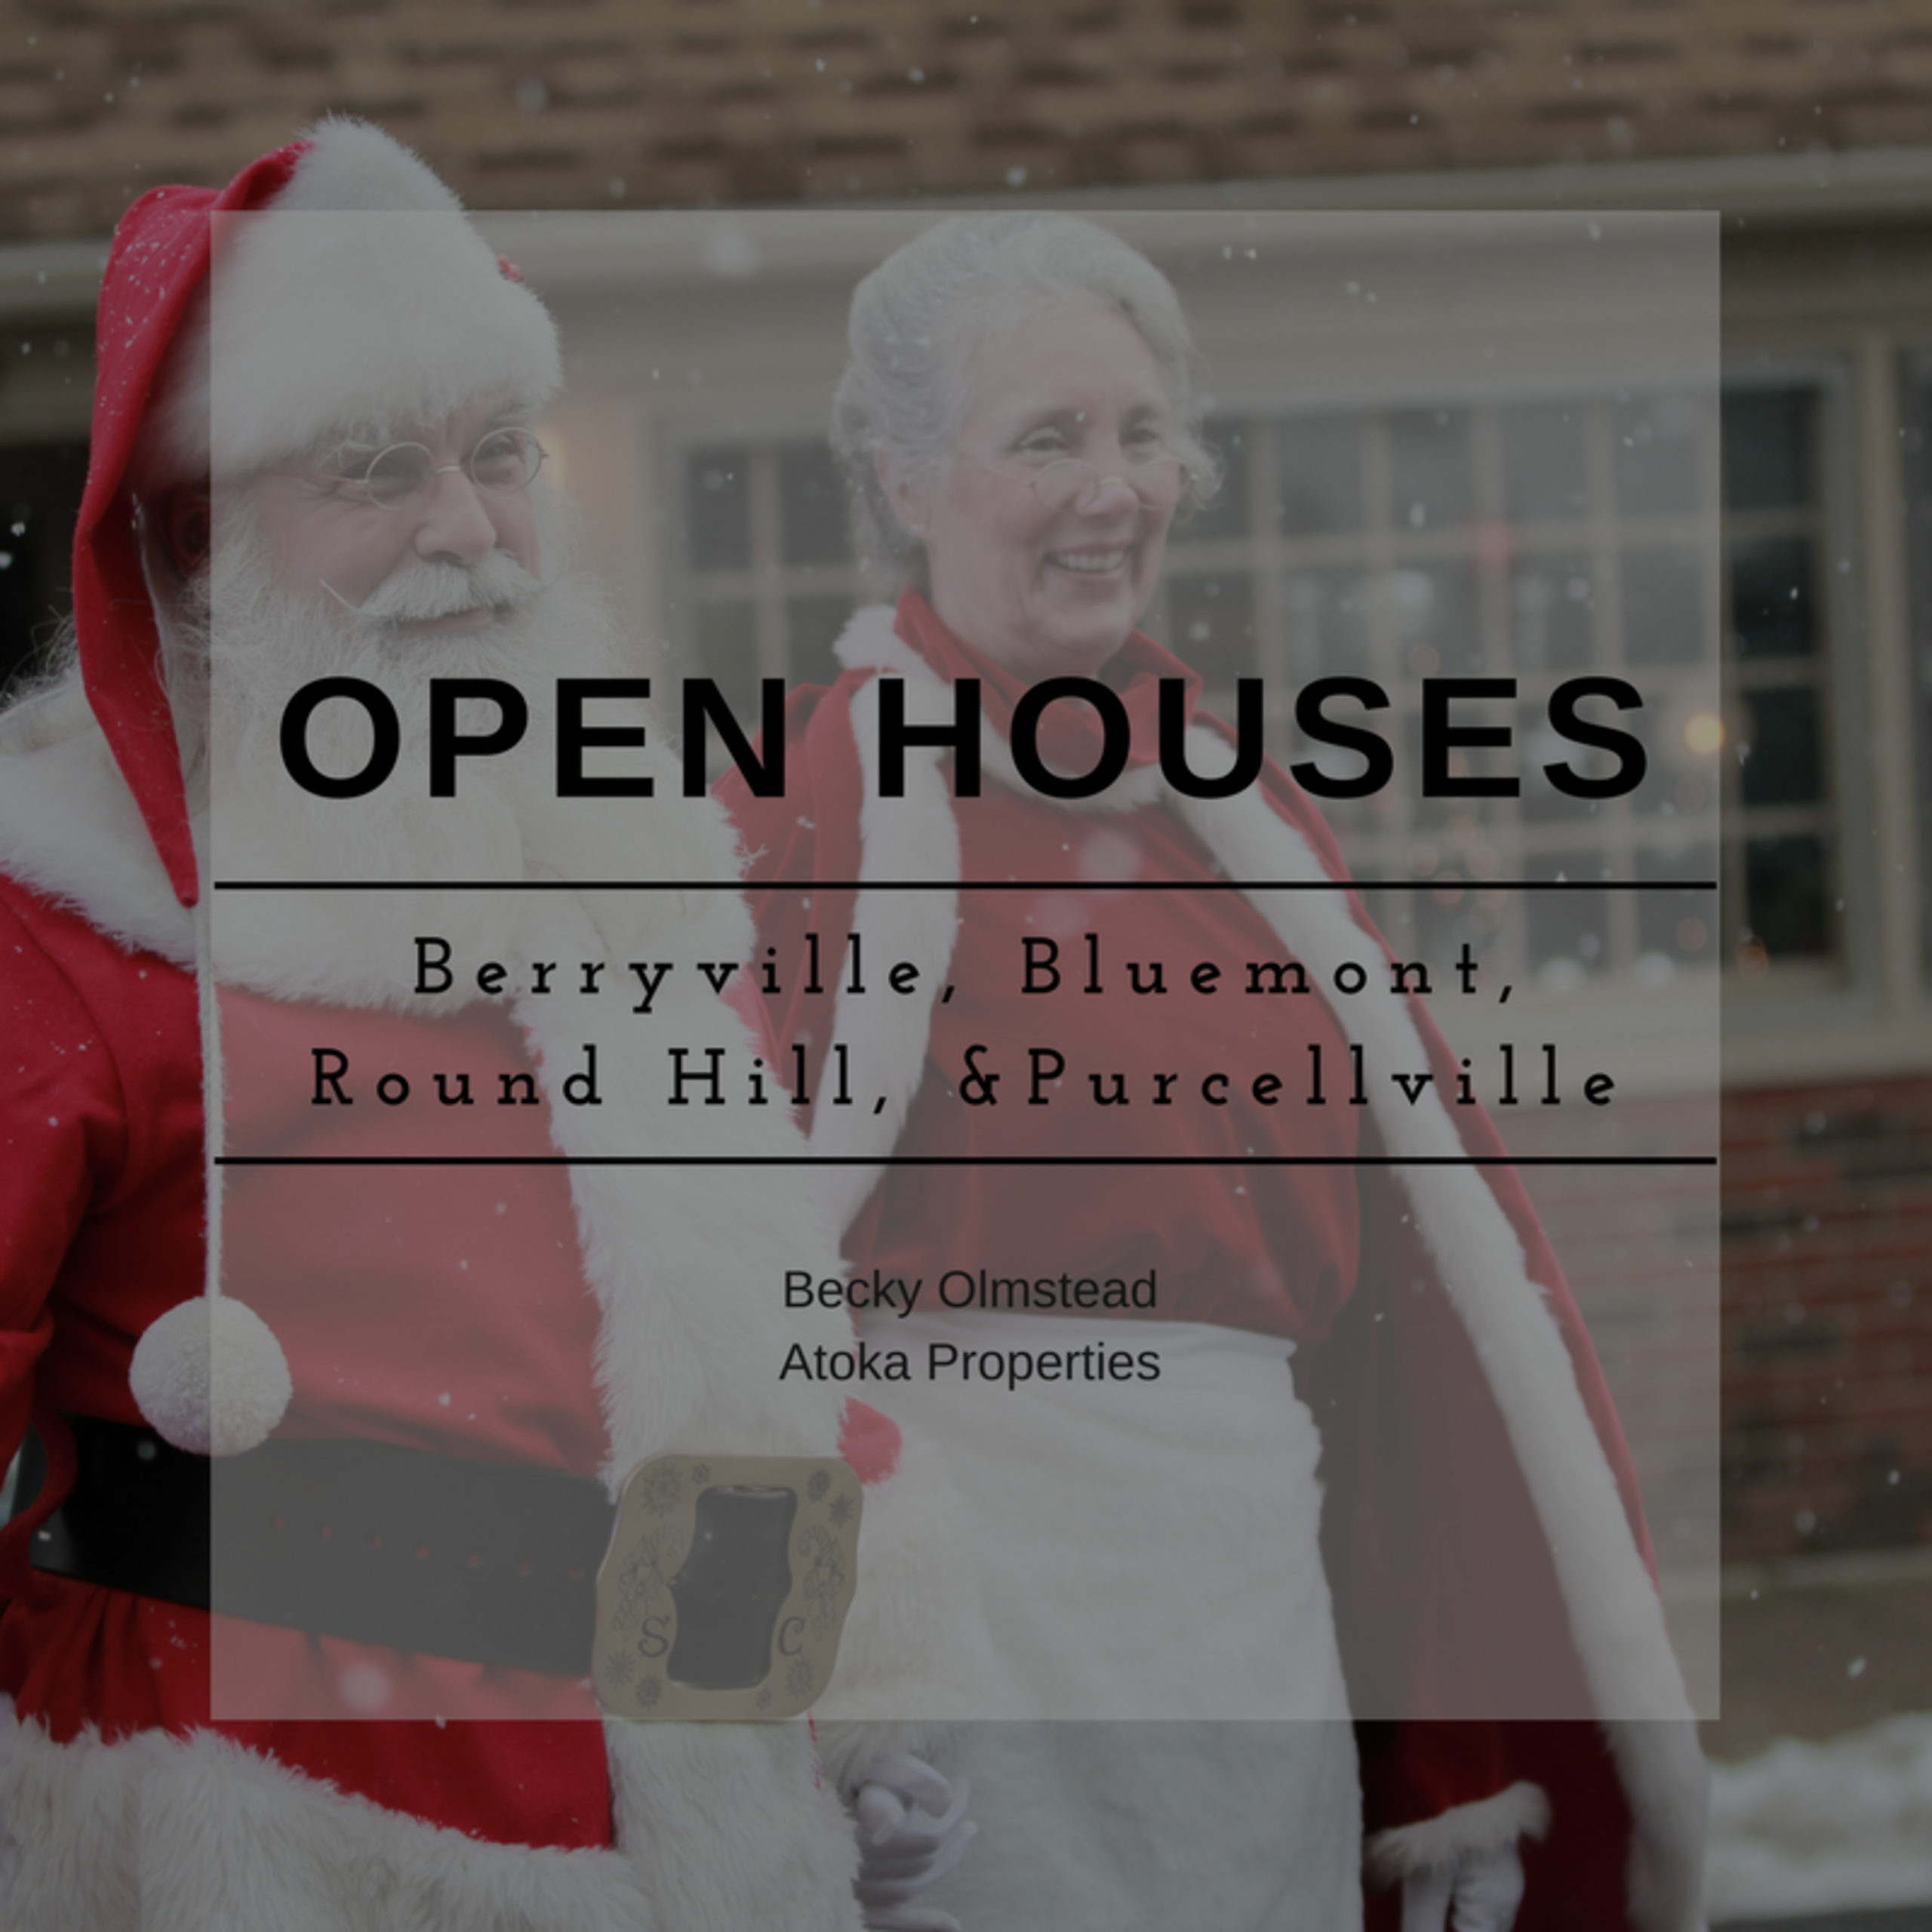 OPEN HOUSE LIST 12/16/17 – 12/17/17